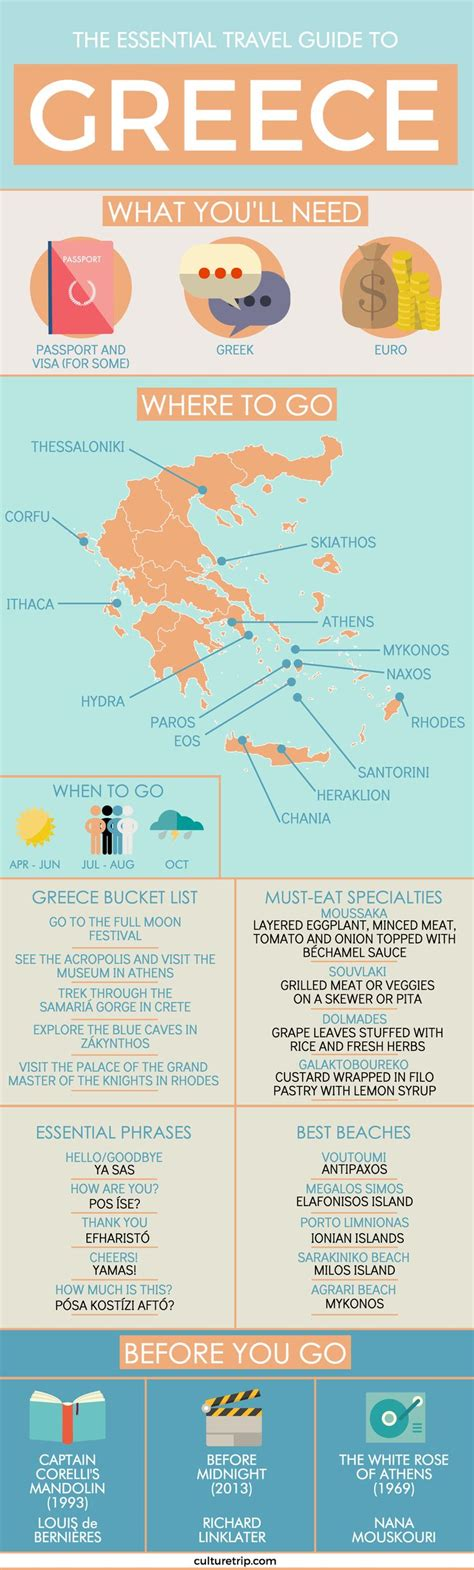 17 Best Images About Place Greece Is The Word On